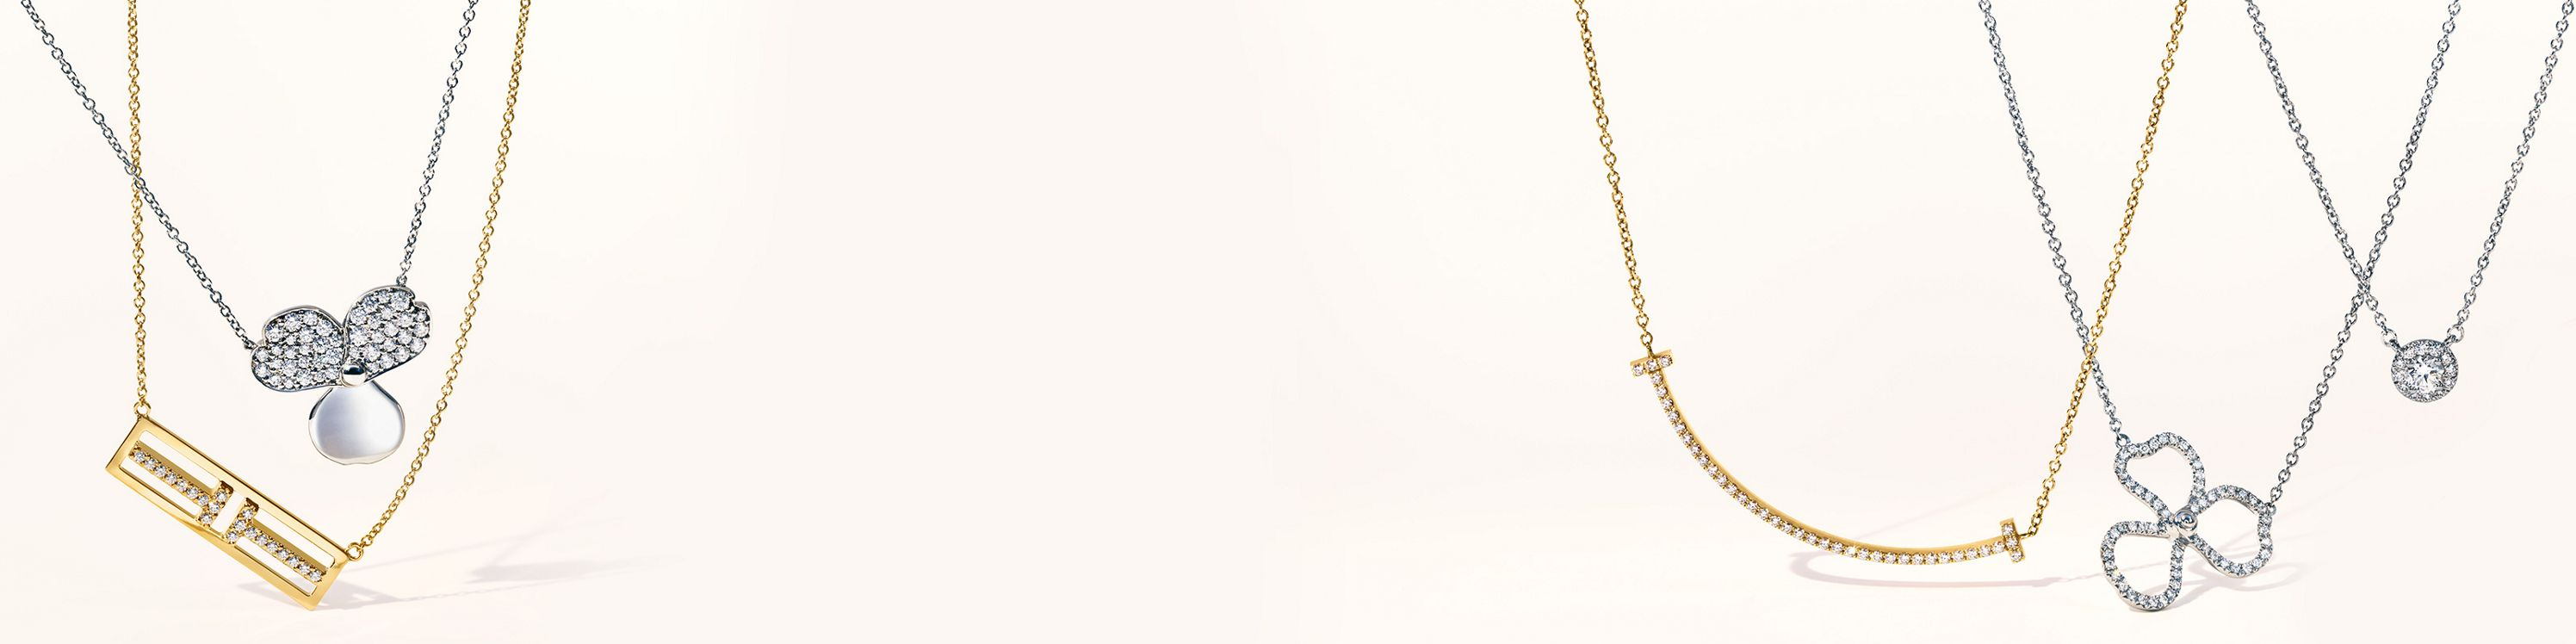 86cc84302 Necklaces & Pendants | Tiffany & Co.